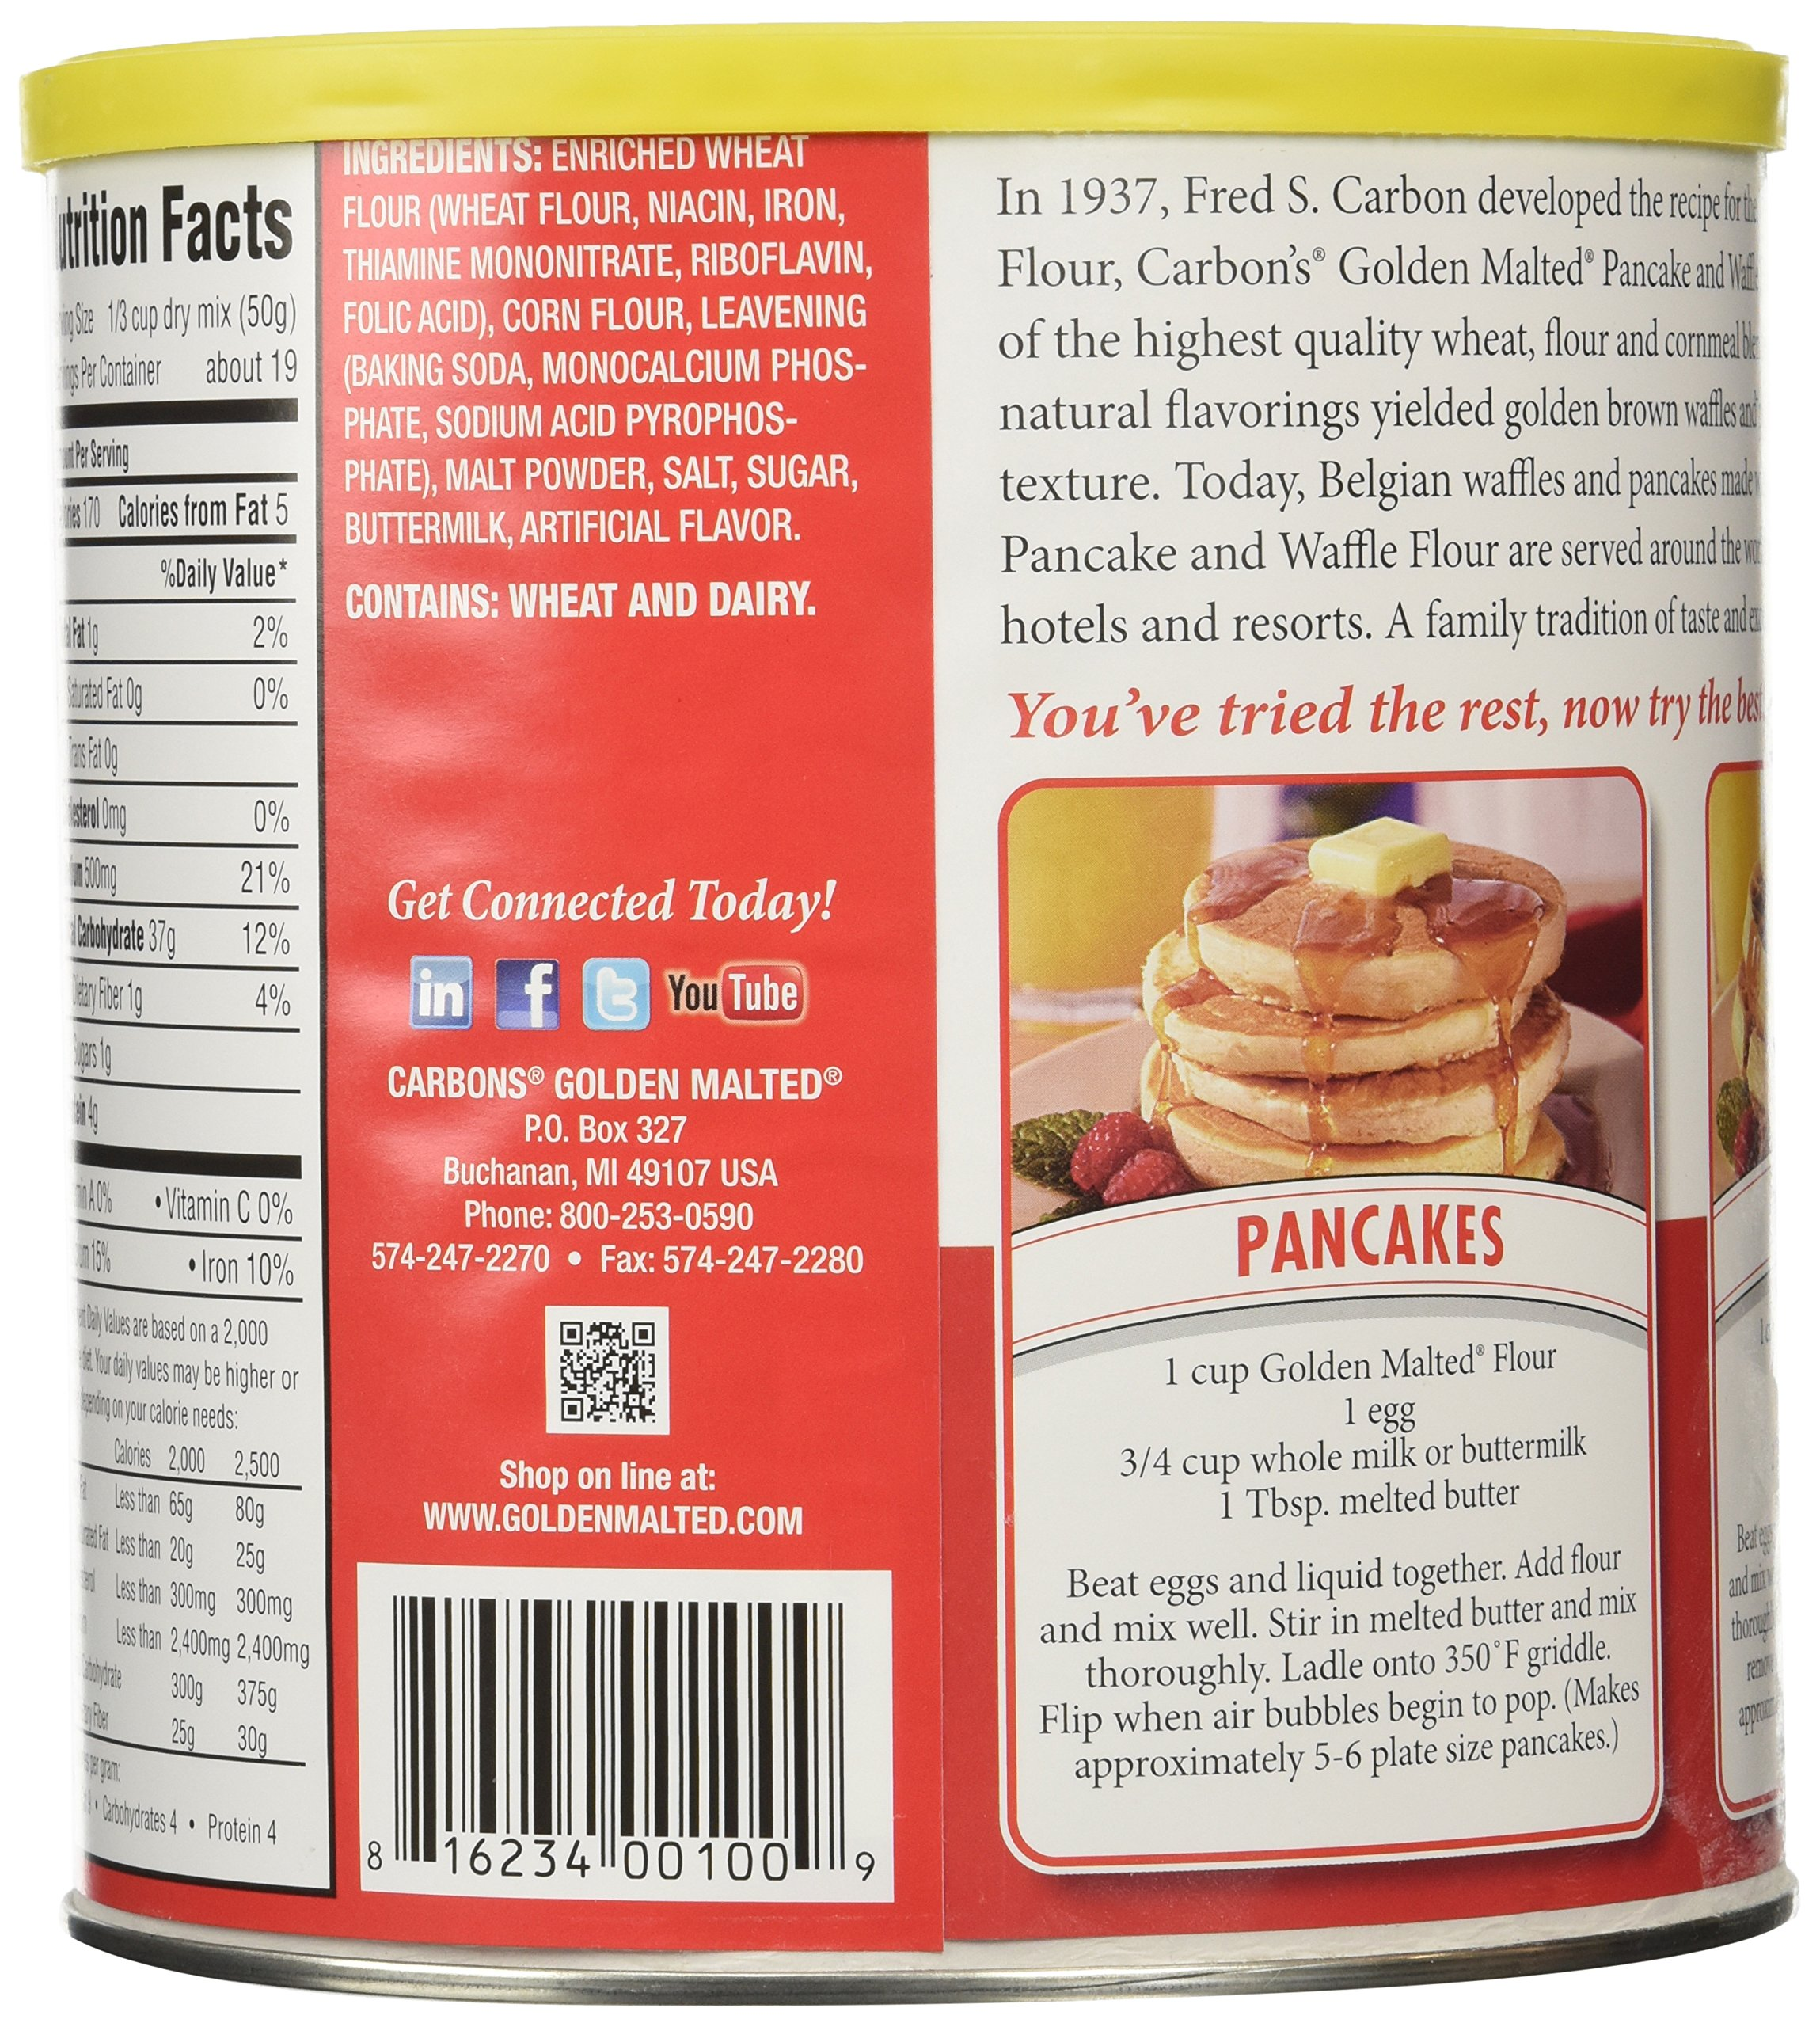 Golden Malted Waffle and Pancake Flour, Original, 33-Ounce Can by Golden Malted (Image #5)